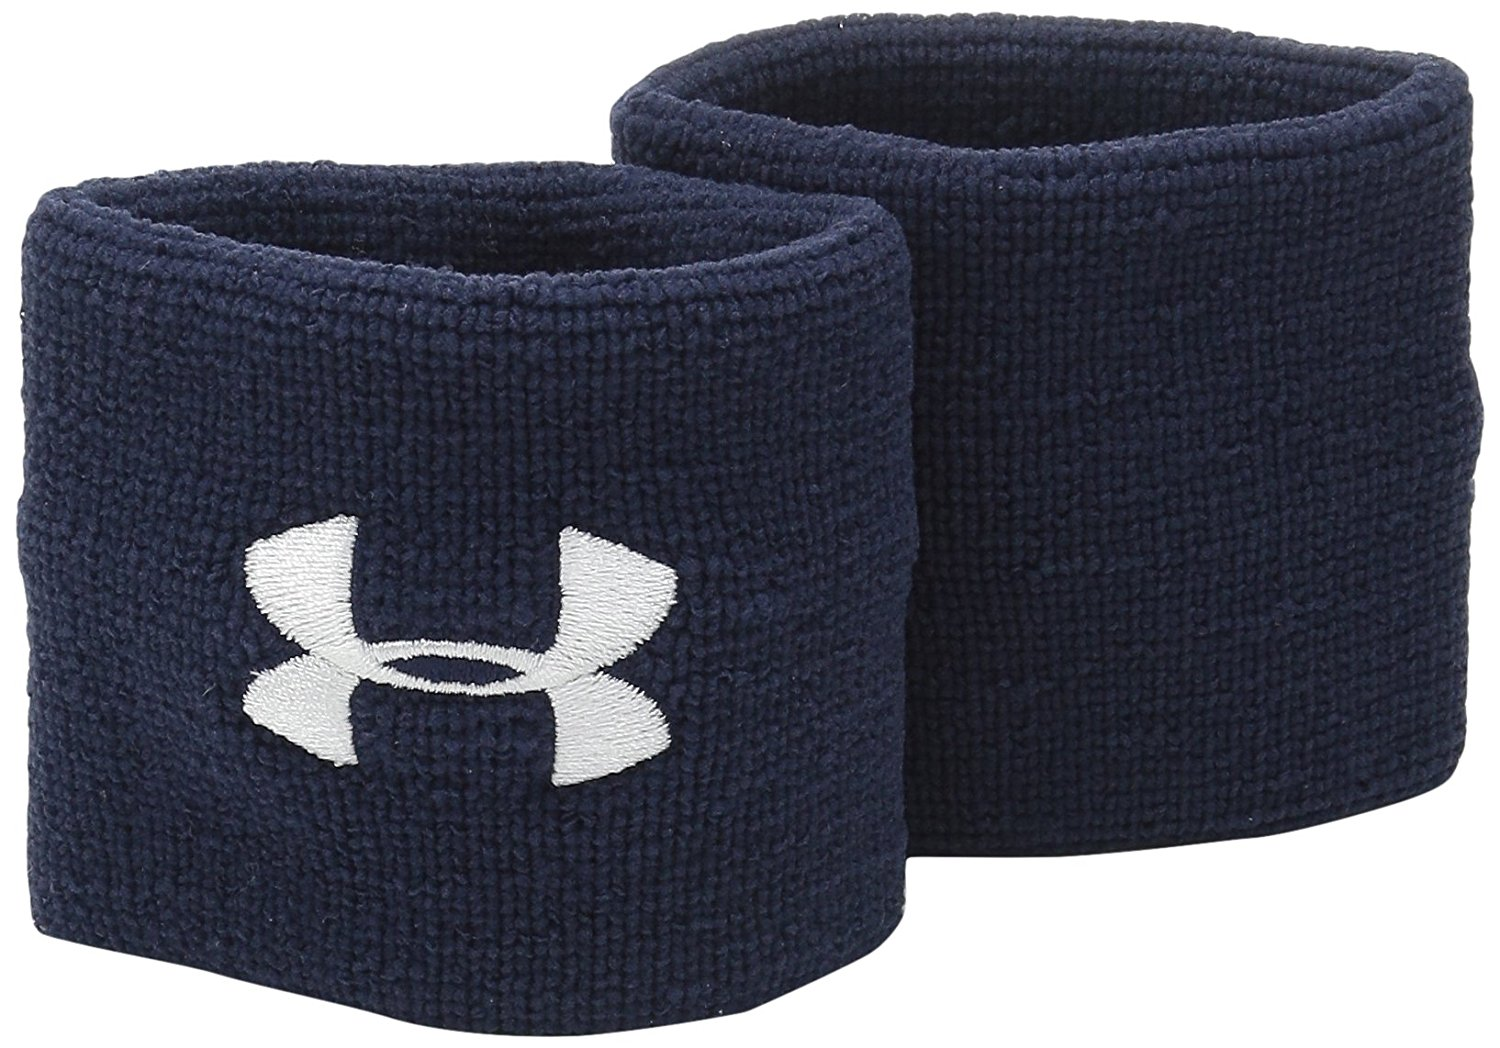 Under Armour Performance Wristband Review